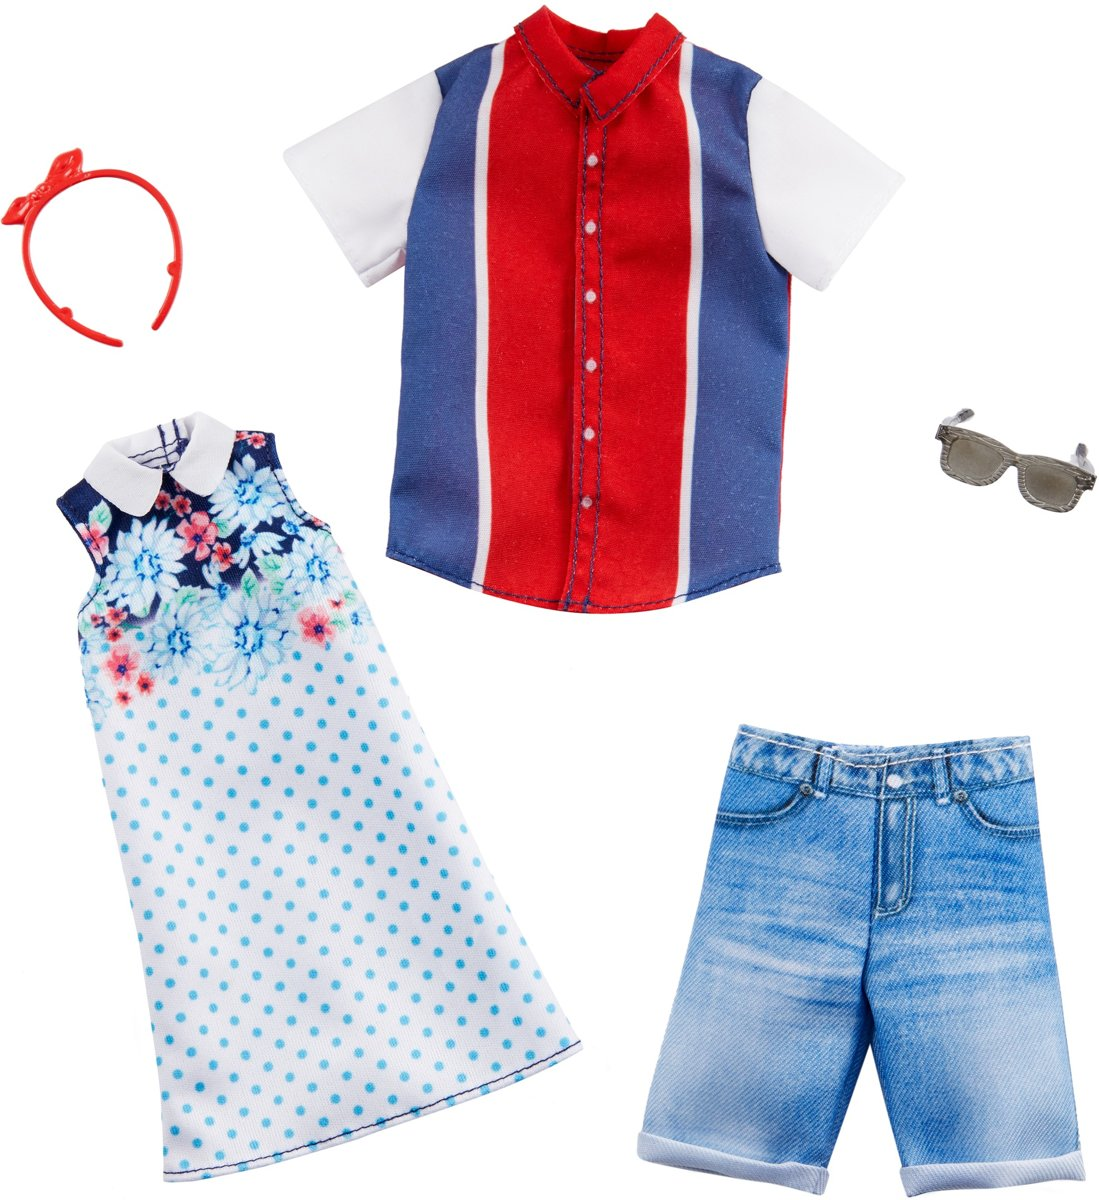 & Ken Fashions outfit 2-pack - rood, wit en blauw -  pop